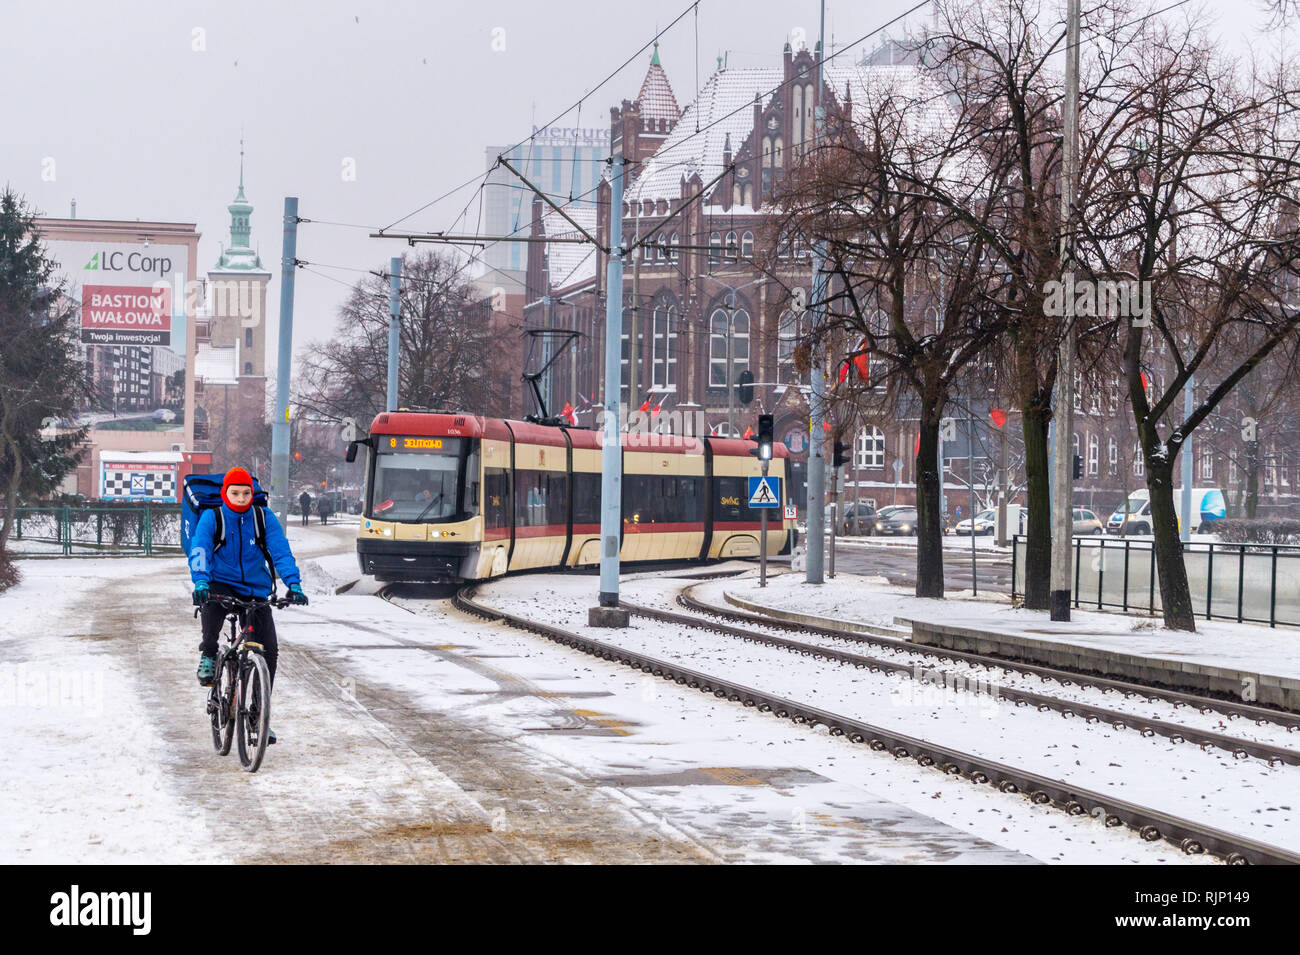 a-man-on-a-bicycle-with-a-tram-approaching-in-snow-plac-solidarnisci-gdask-poland-RJP149.jpg